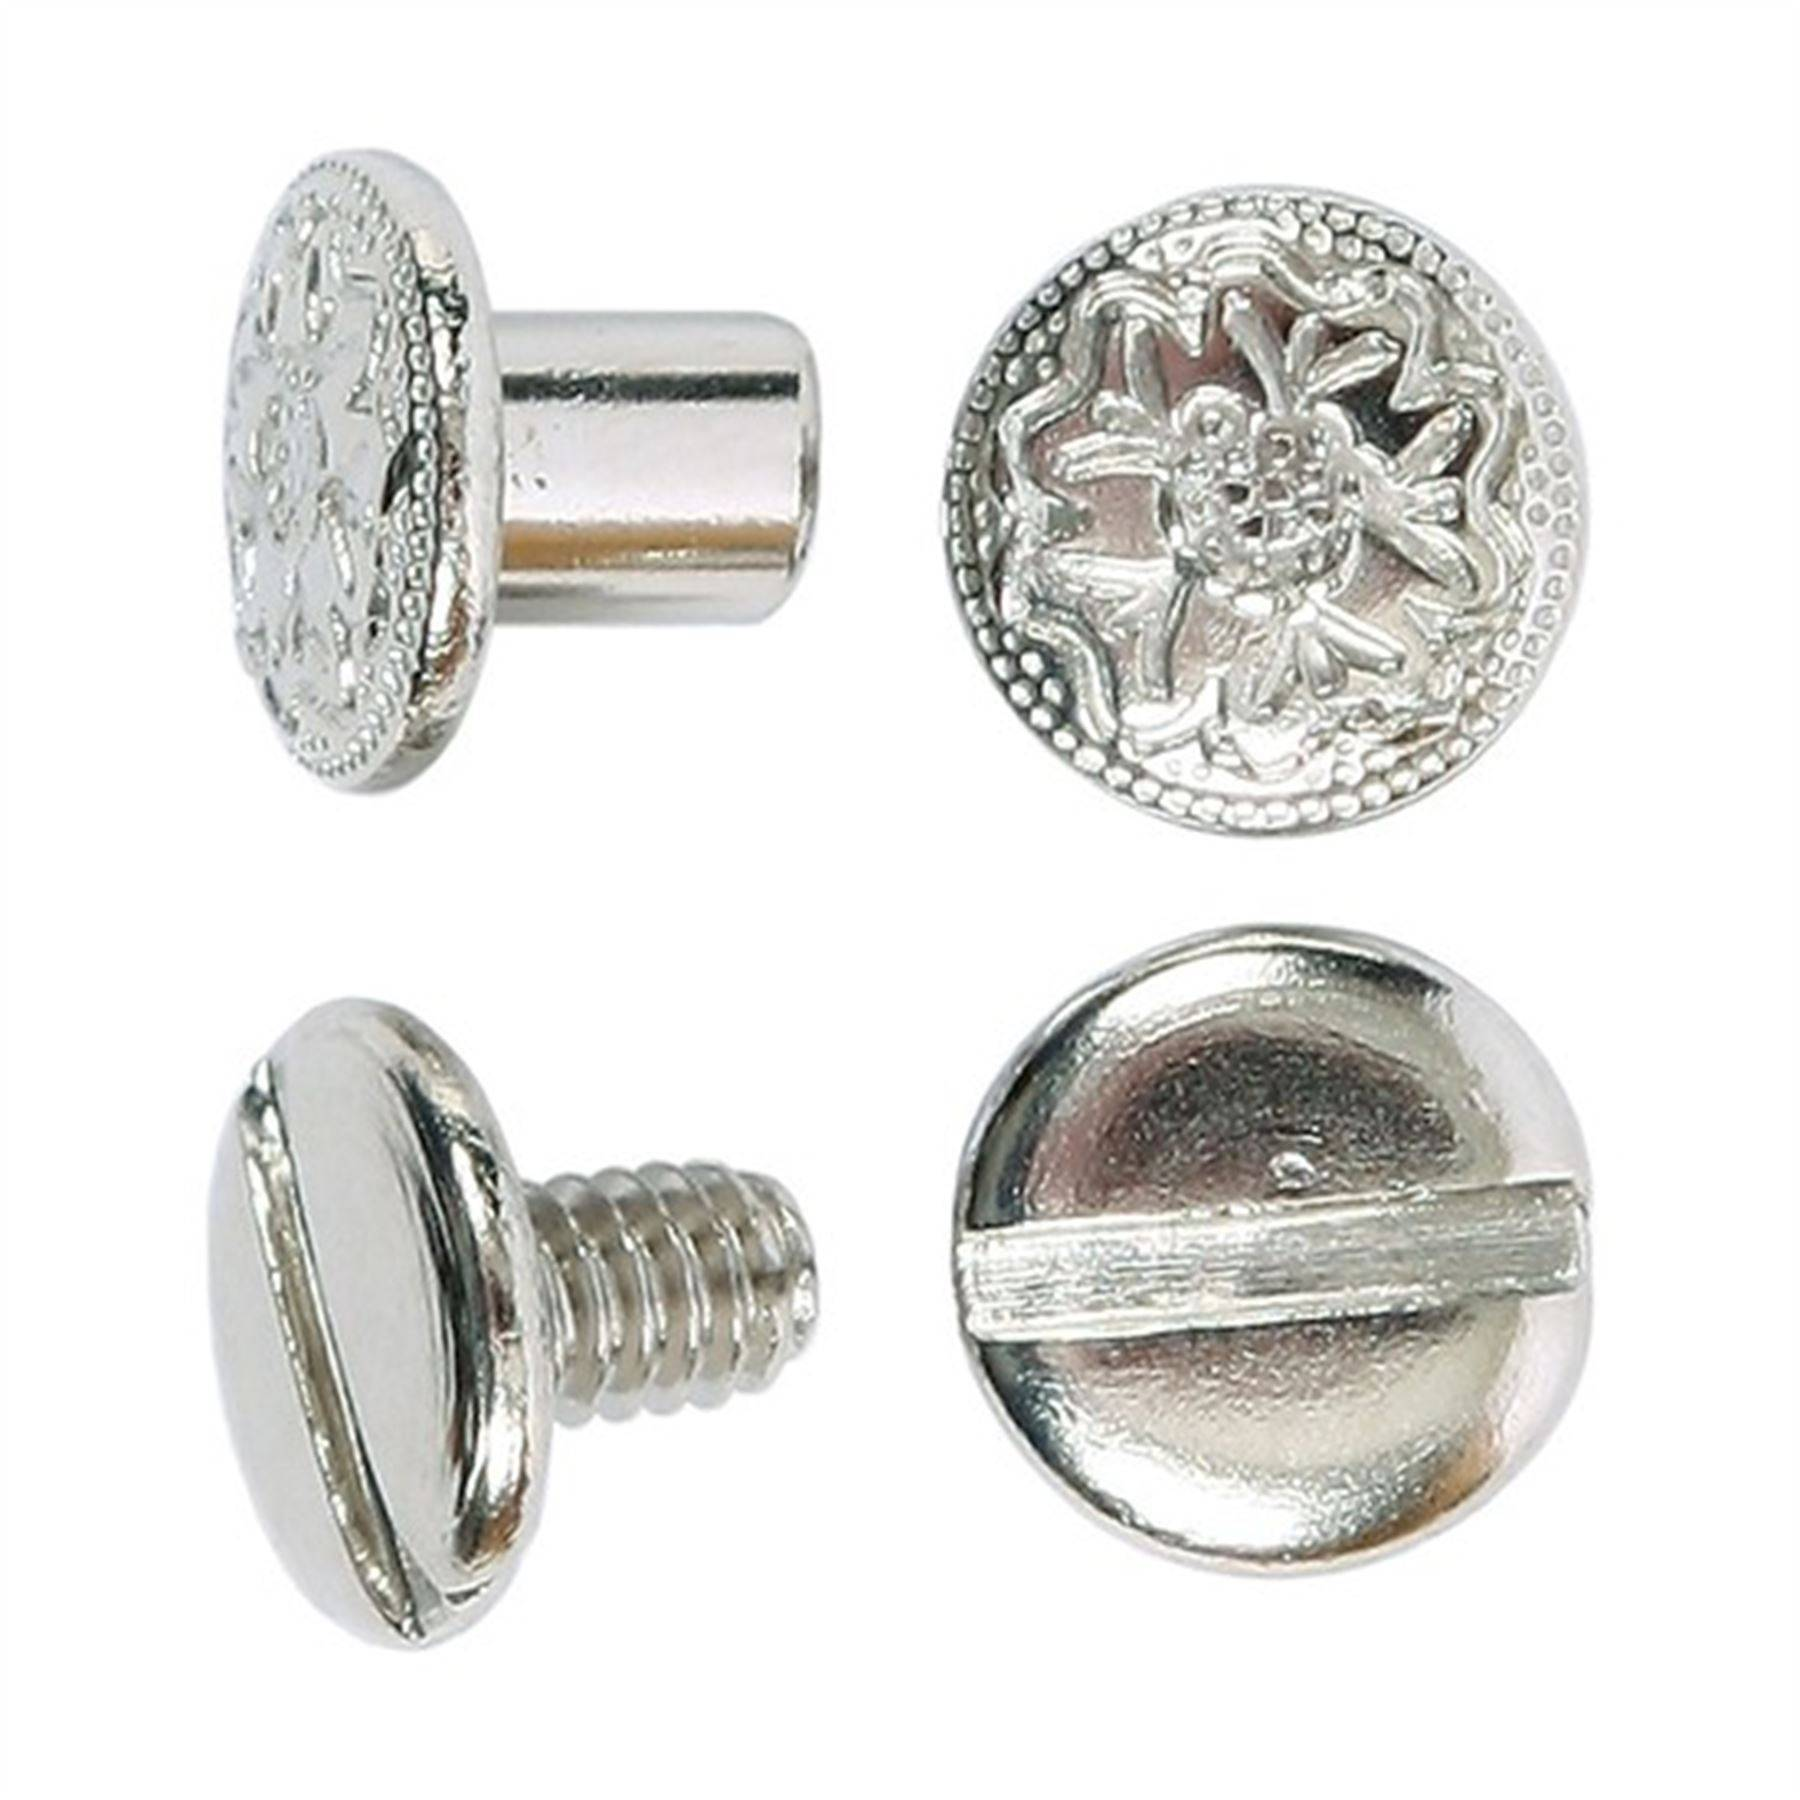 Chicago screws by weaver leather package of in stable